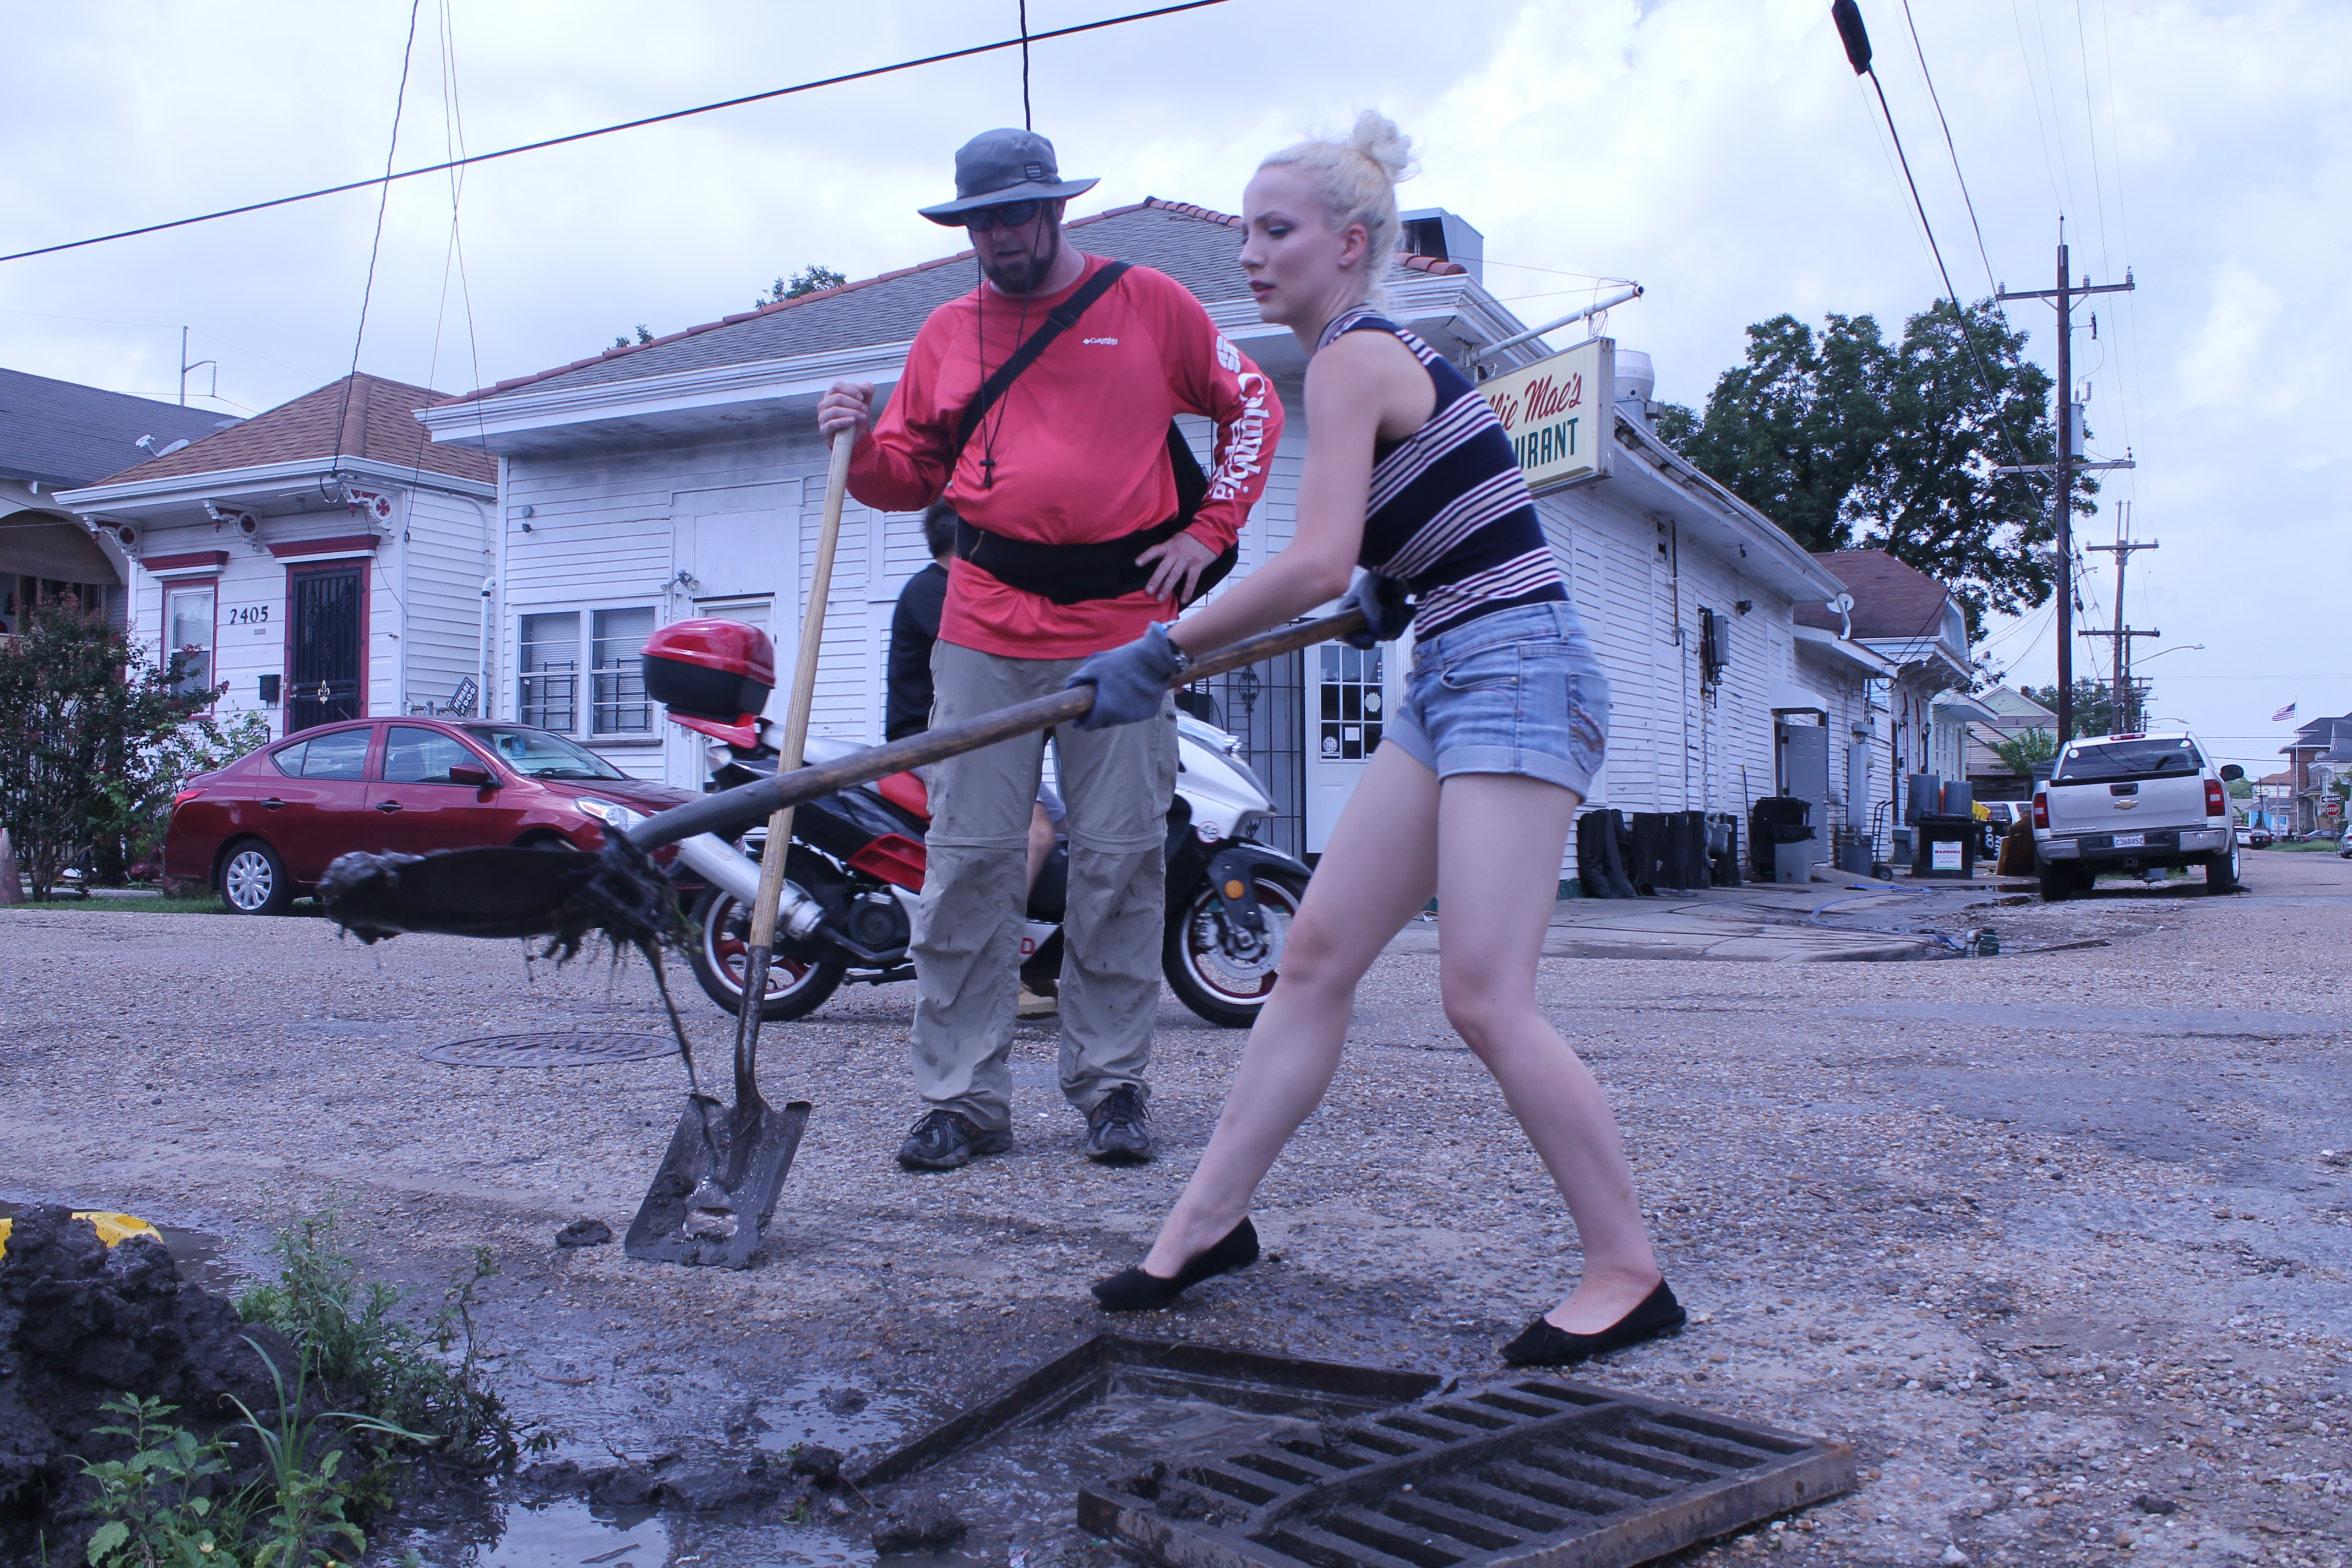 Catch Basin Cleanup Kickstarted After Saturdays Deluge Drains Mid